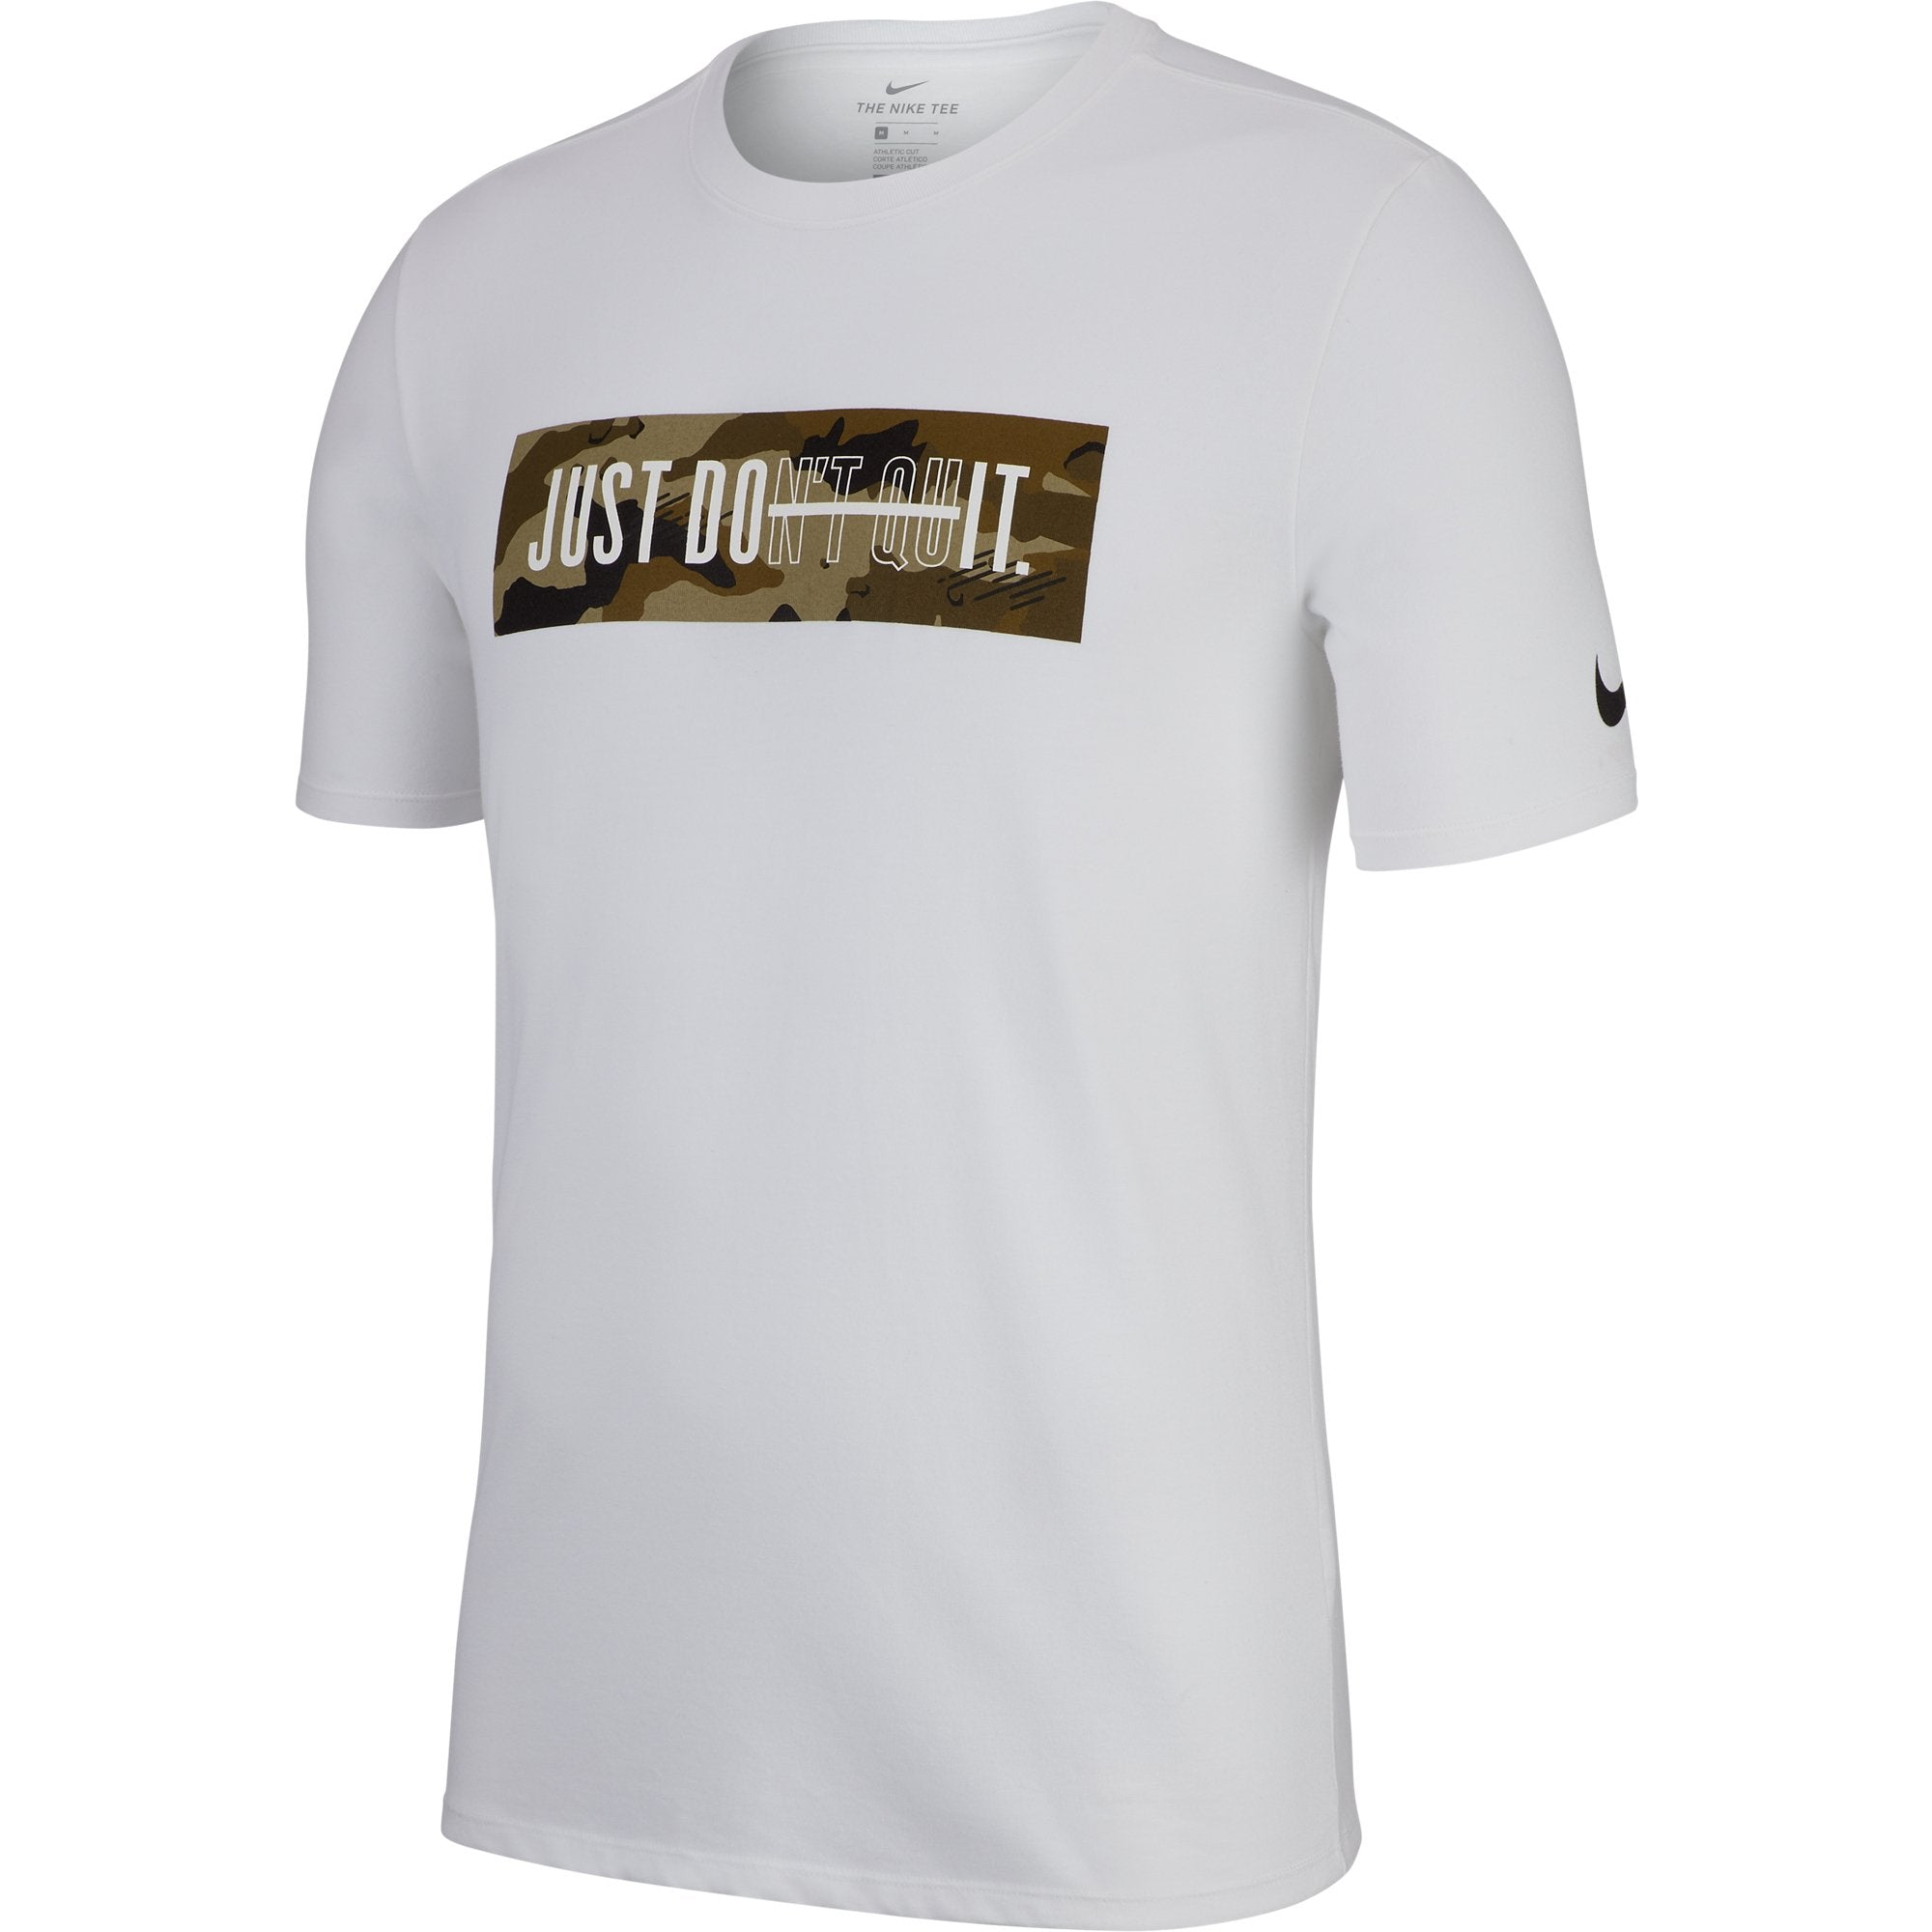 6f7a3cf1851cae Buy Nike Men Dry-Fit Just Don t Quit Graphic Short Sleeve Tee